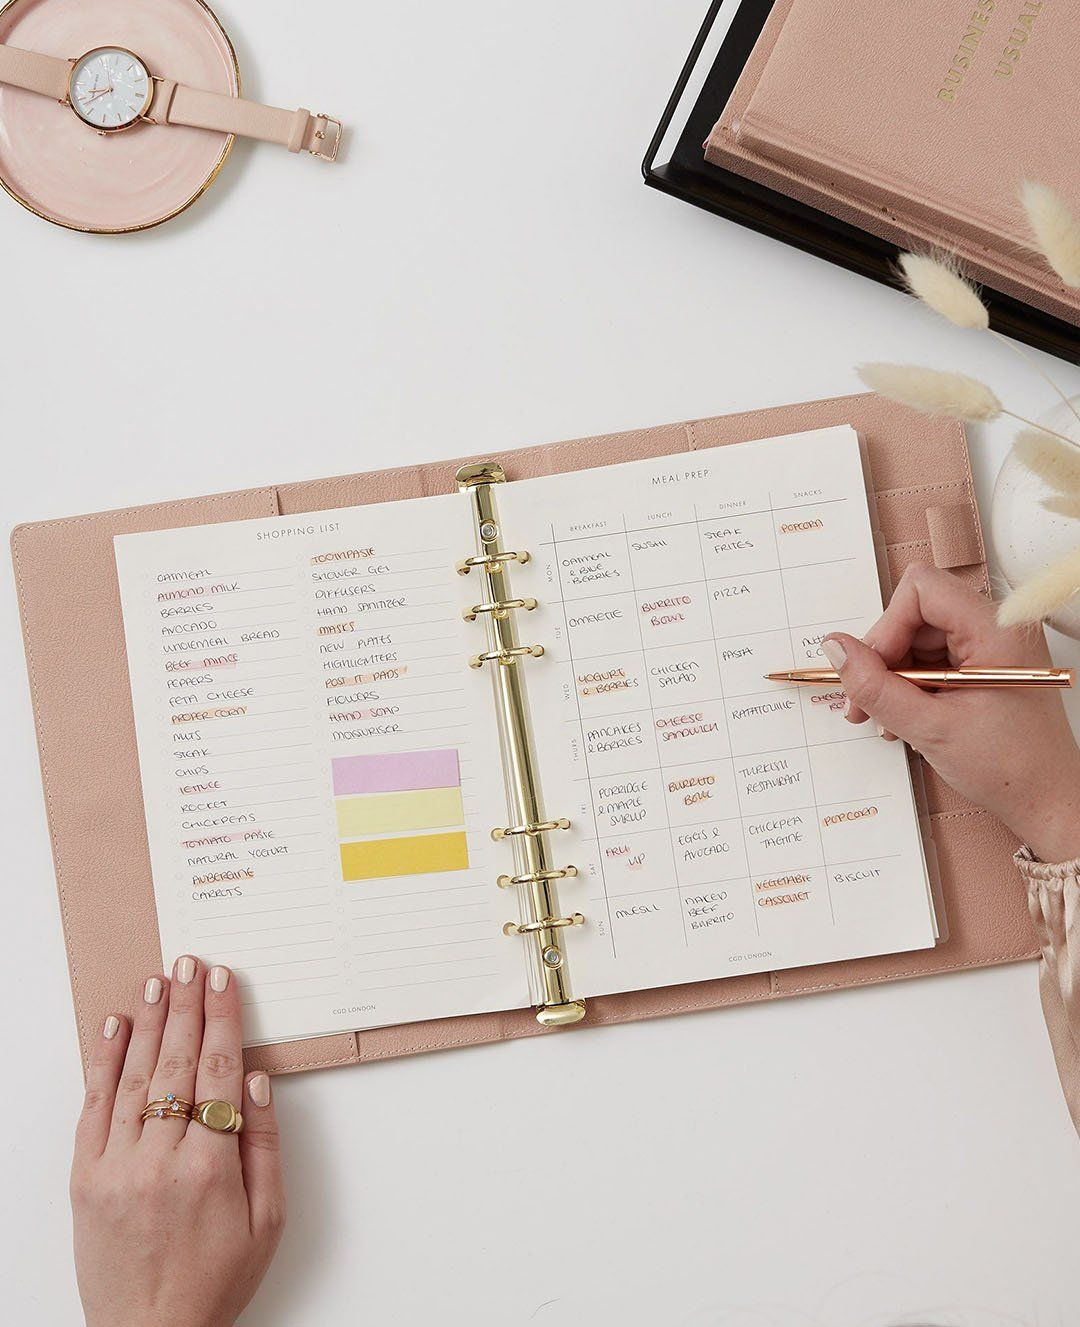 Meal-Plan Agenda Inserts - CGD LONDON